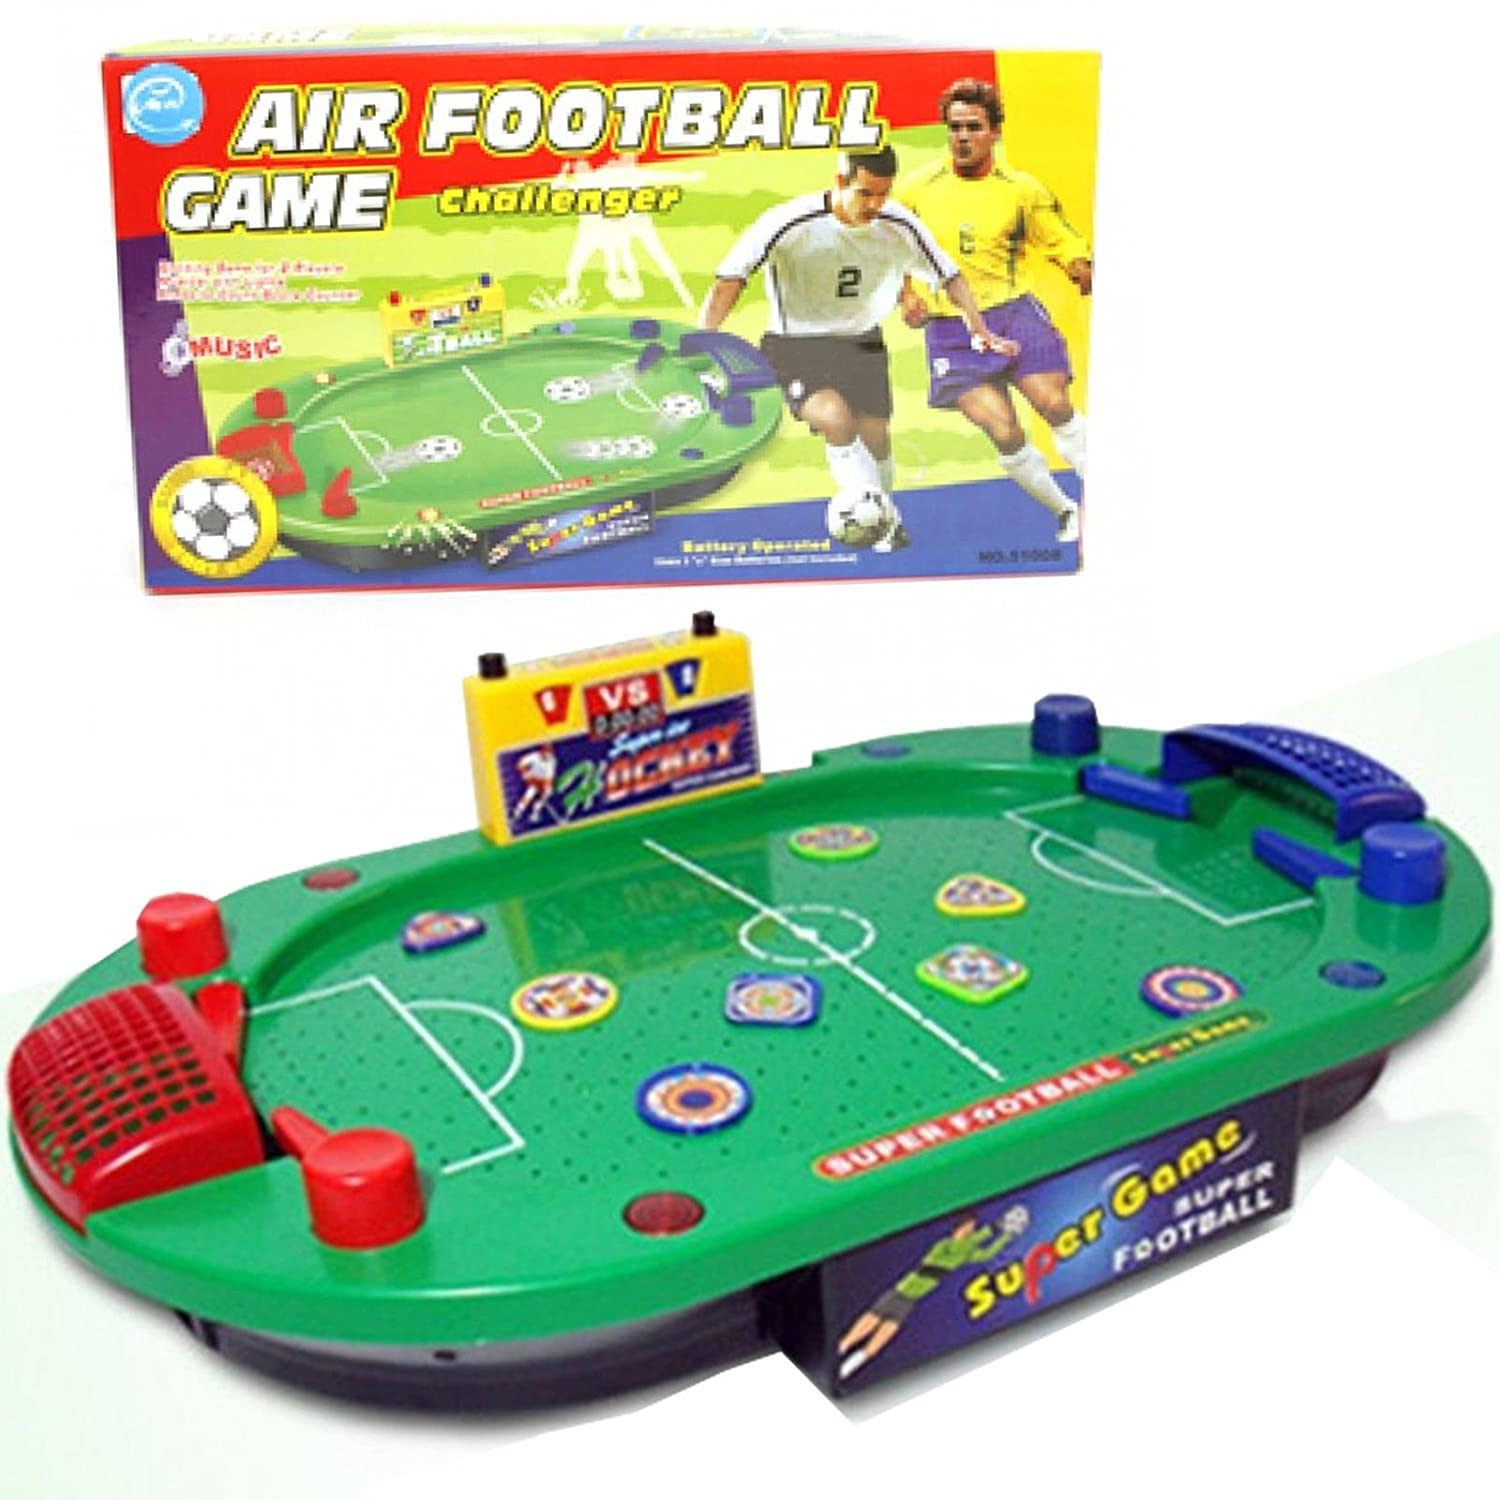 ZUMZ NEW TABLE TOP AIR FOOTBALL GAME ELECTRONIC SOUNDS GREAT